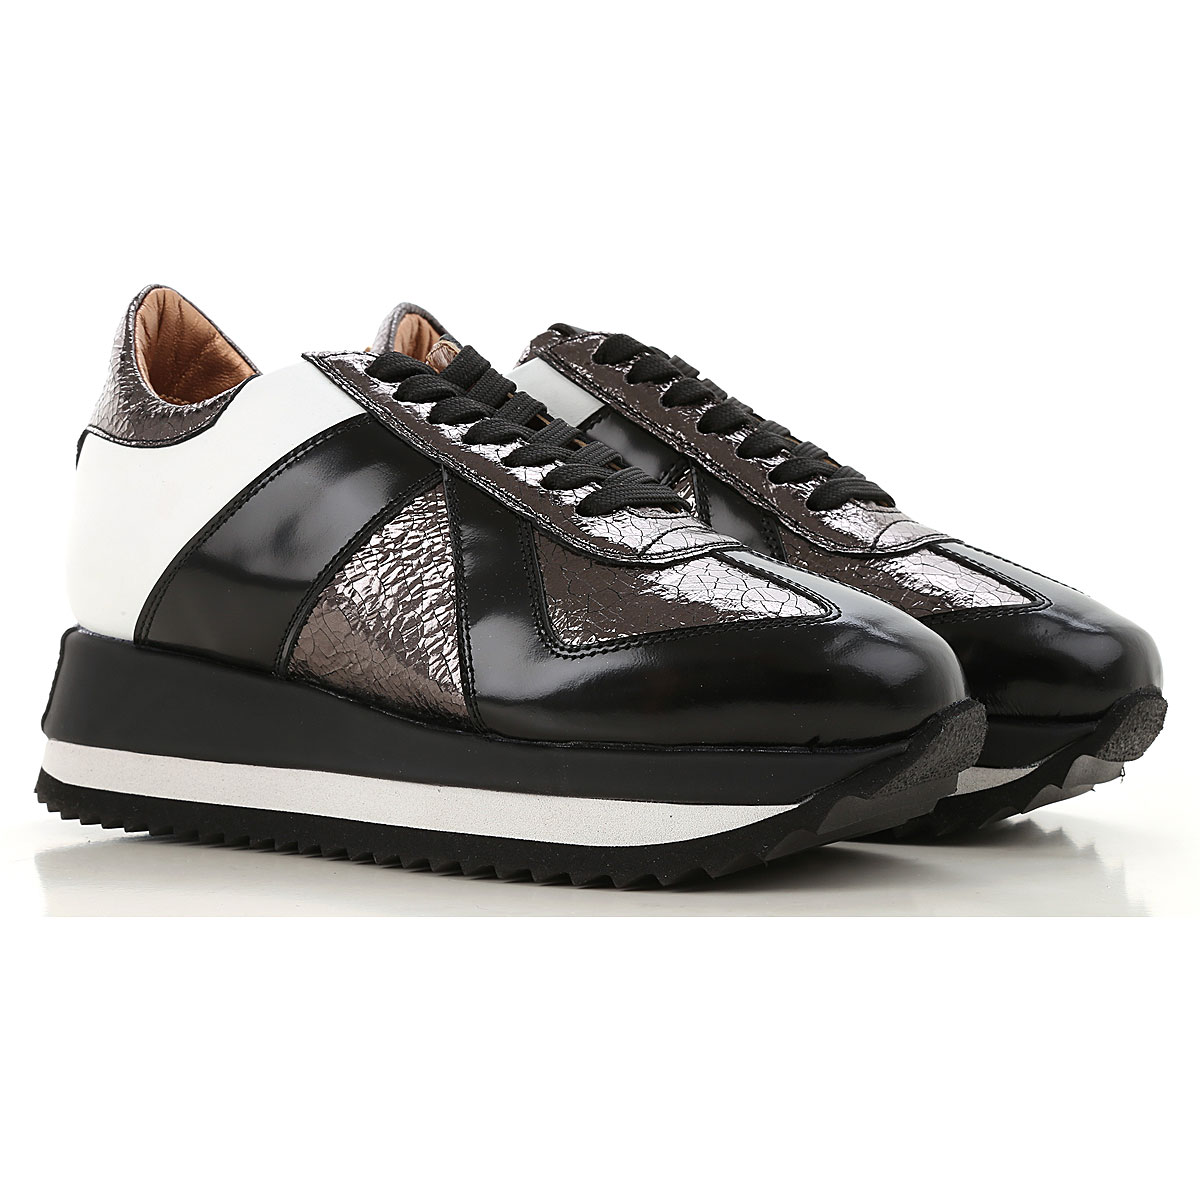 Image of Alexander Smith Sneakers for Women, Graphite, Leather, 2017, 6 8